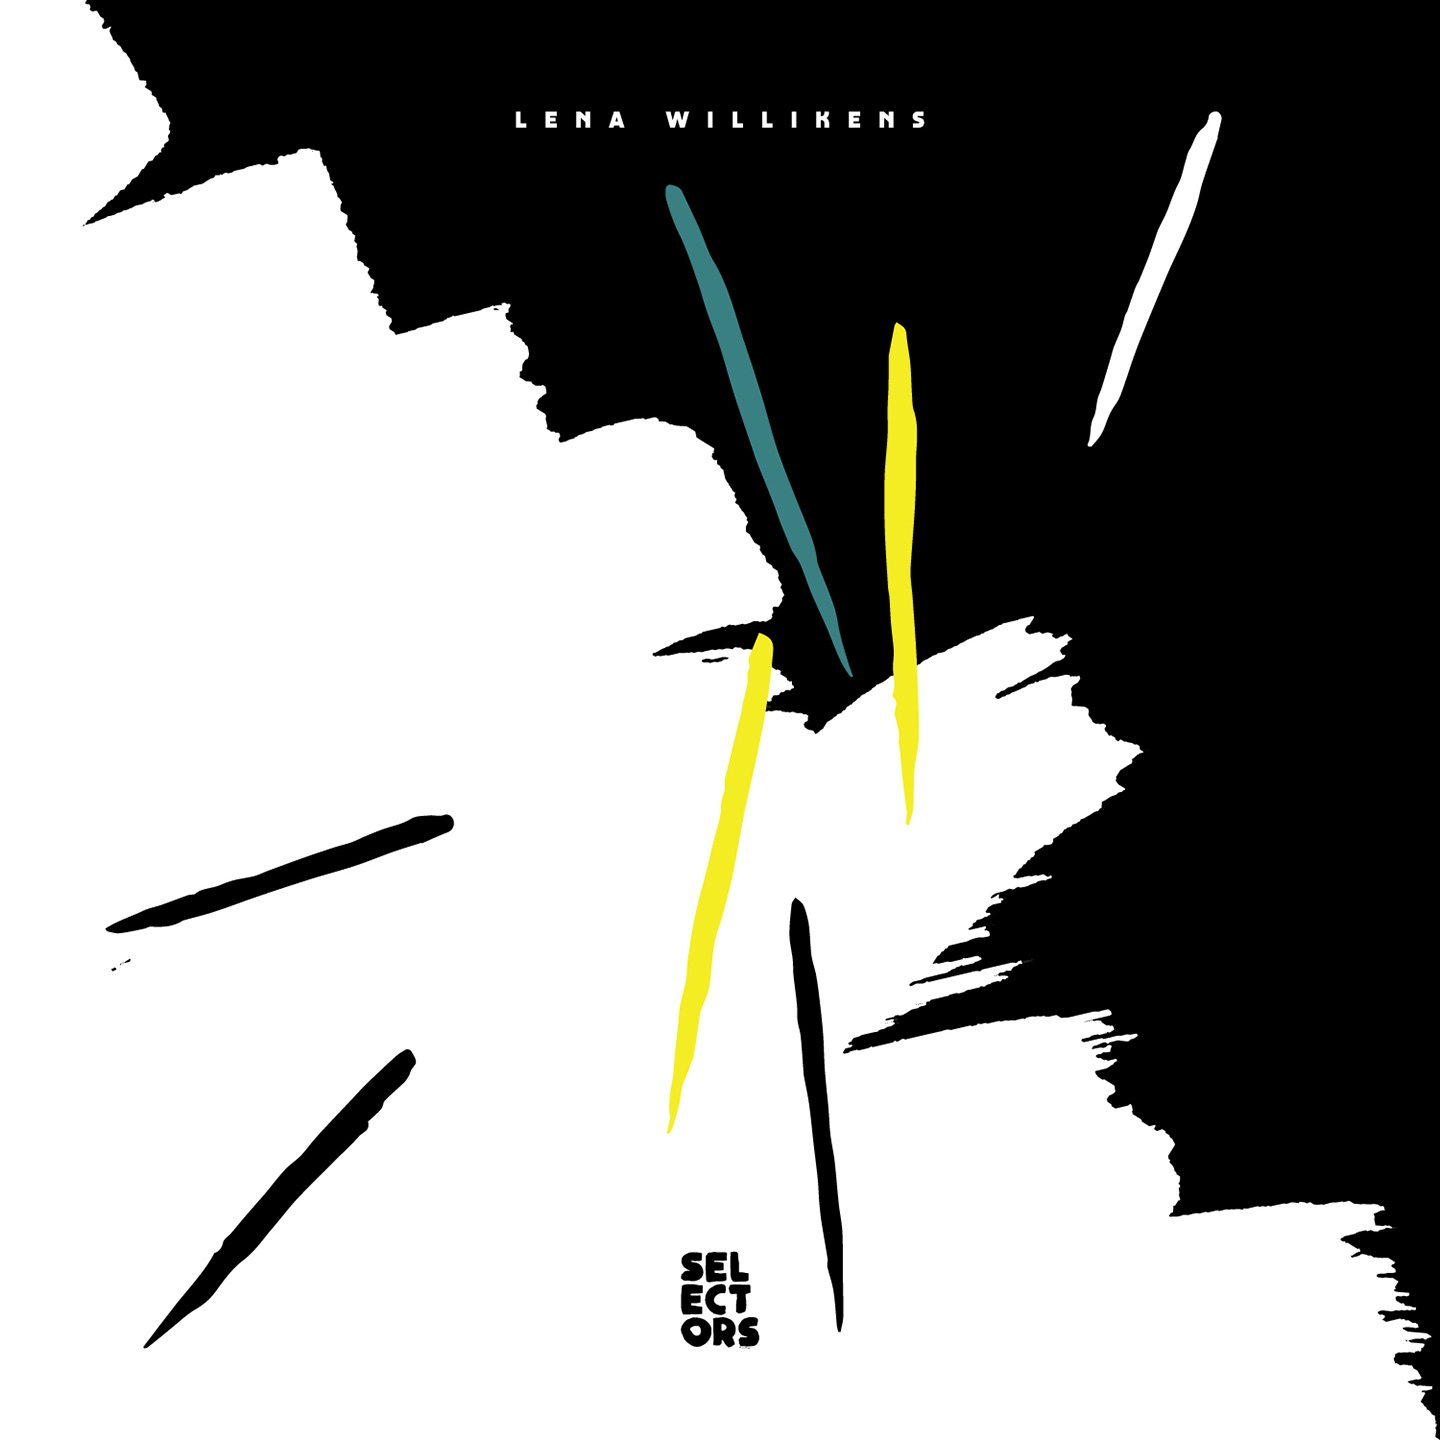 Lena Willikens - Selectors 005